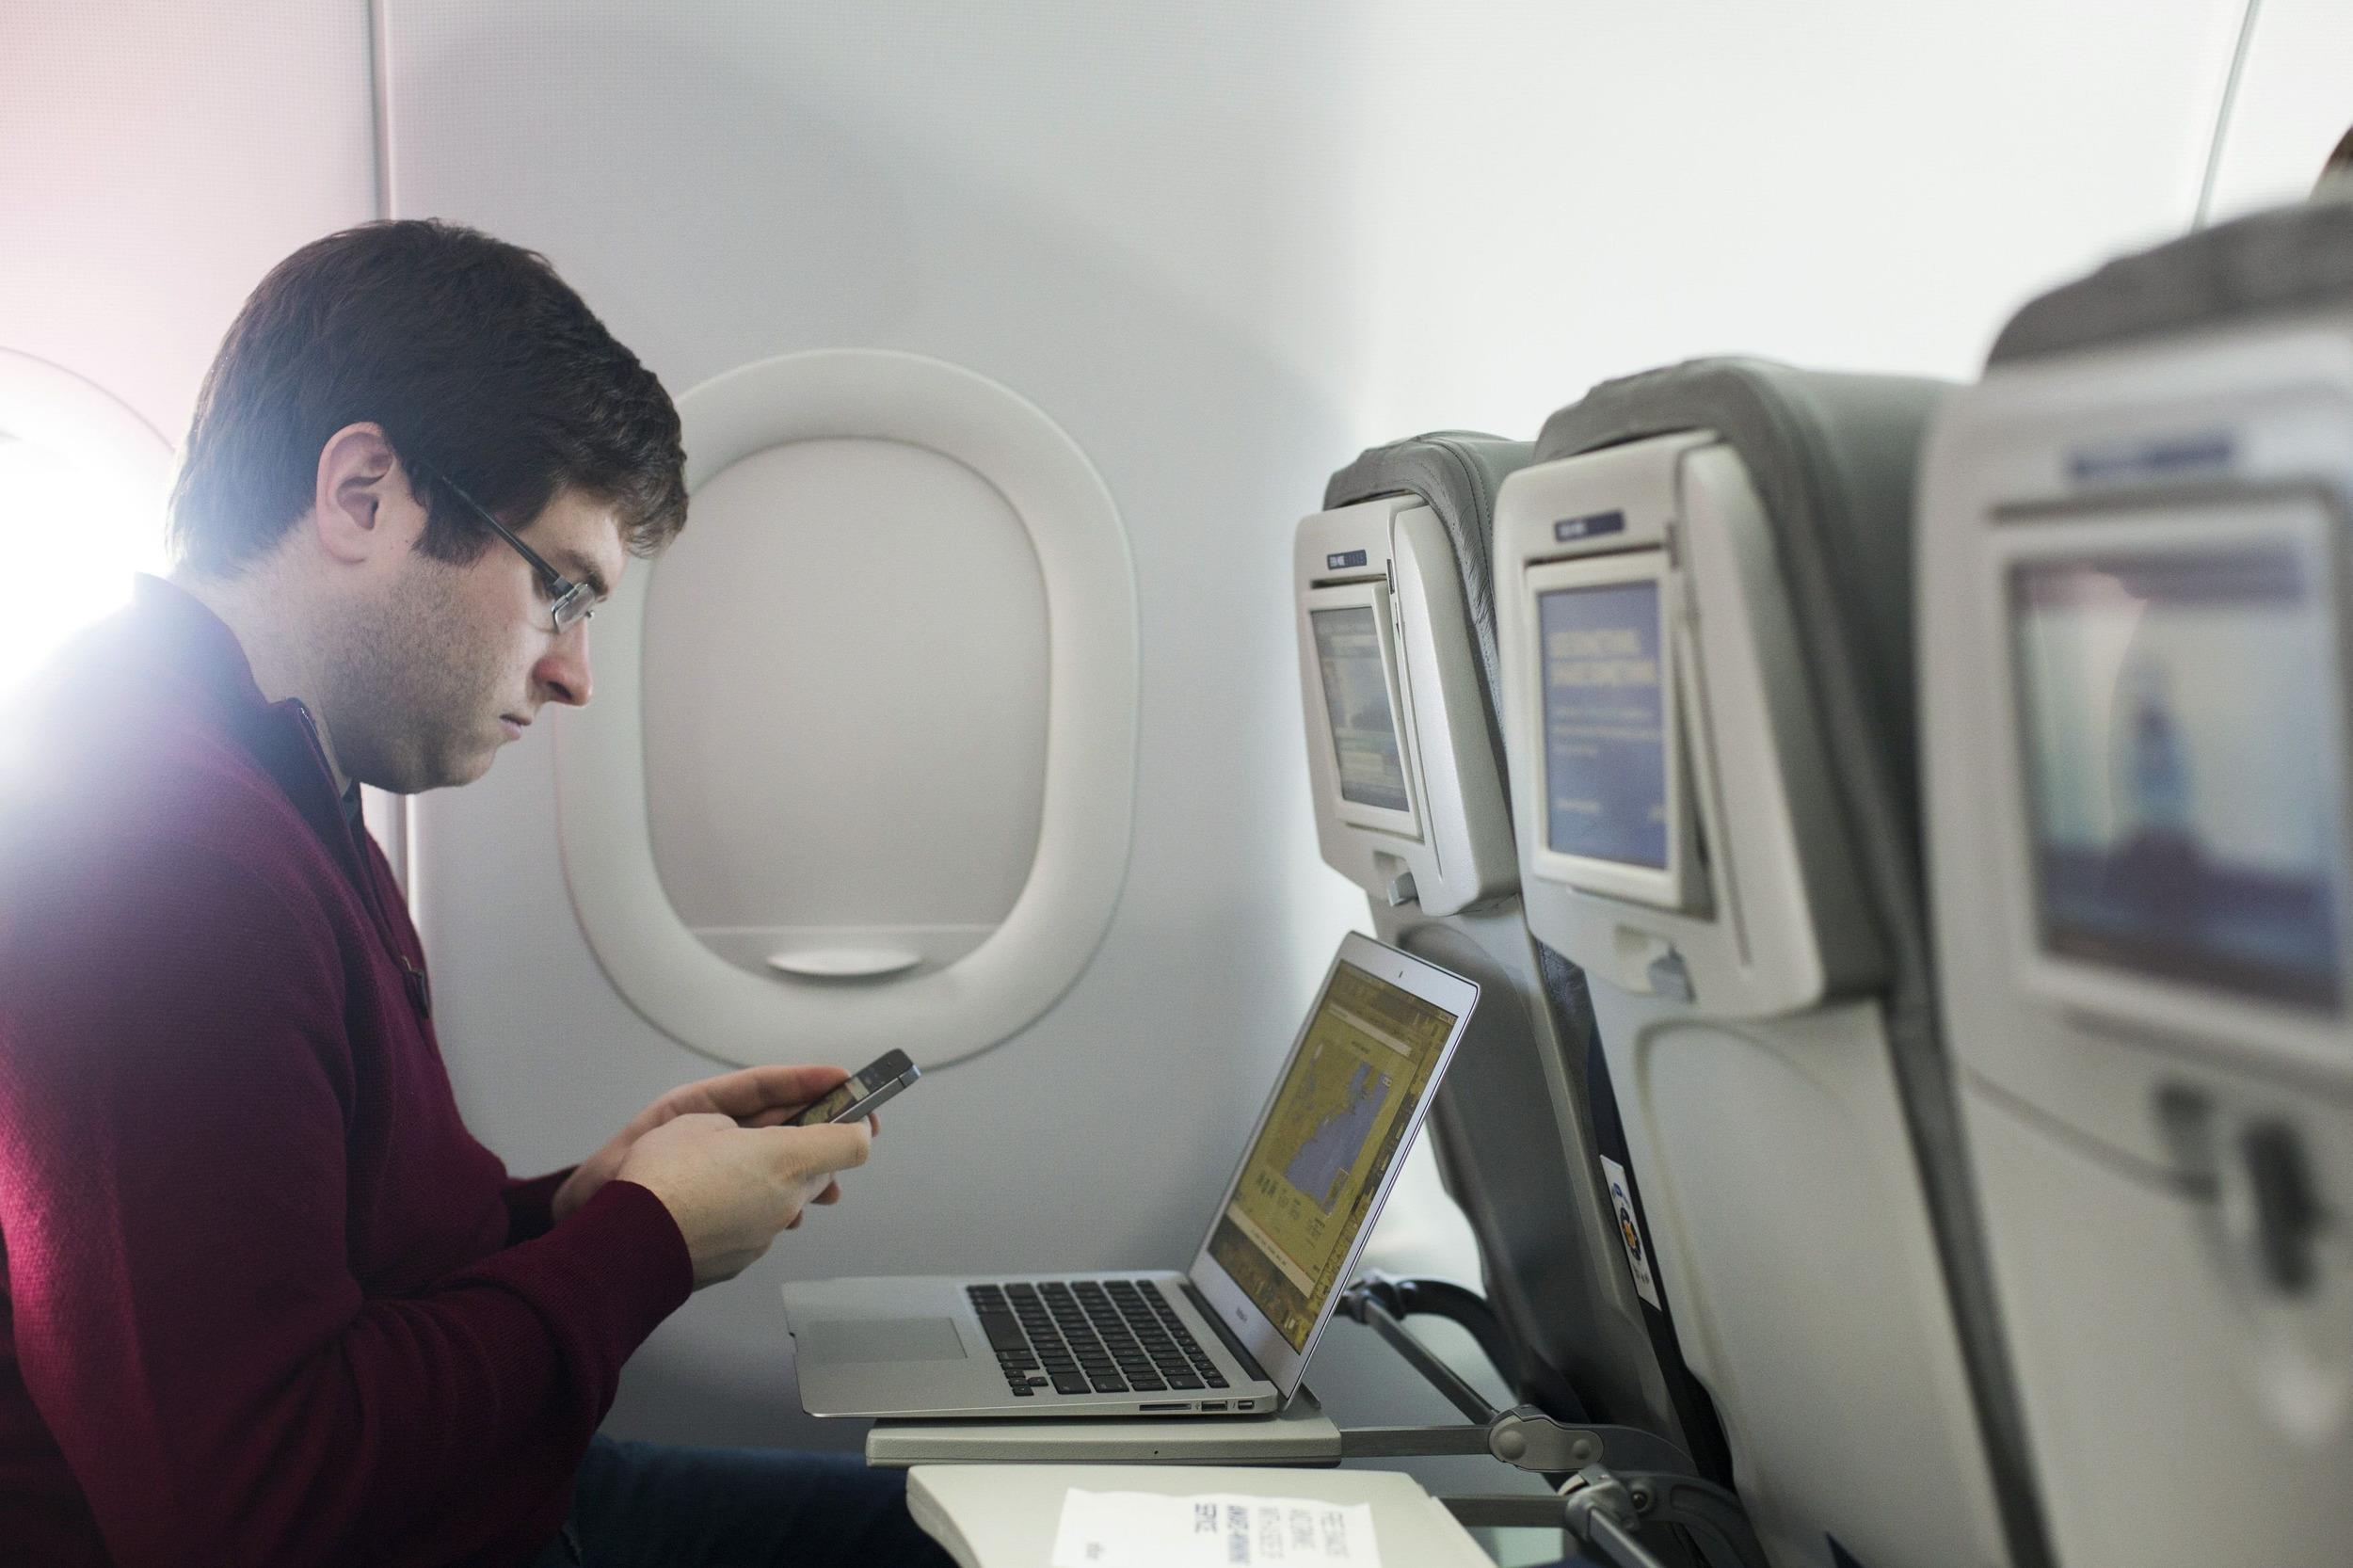 Image: A man uses his mobile phone and laptop to test a new high speed inflight Internet service named Fli-Fi while on a special JetBlue media flight out of John F. Kennedy International Airport in New York